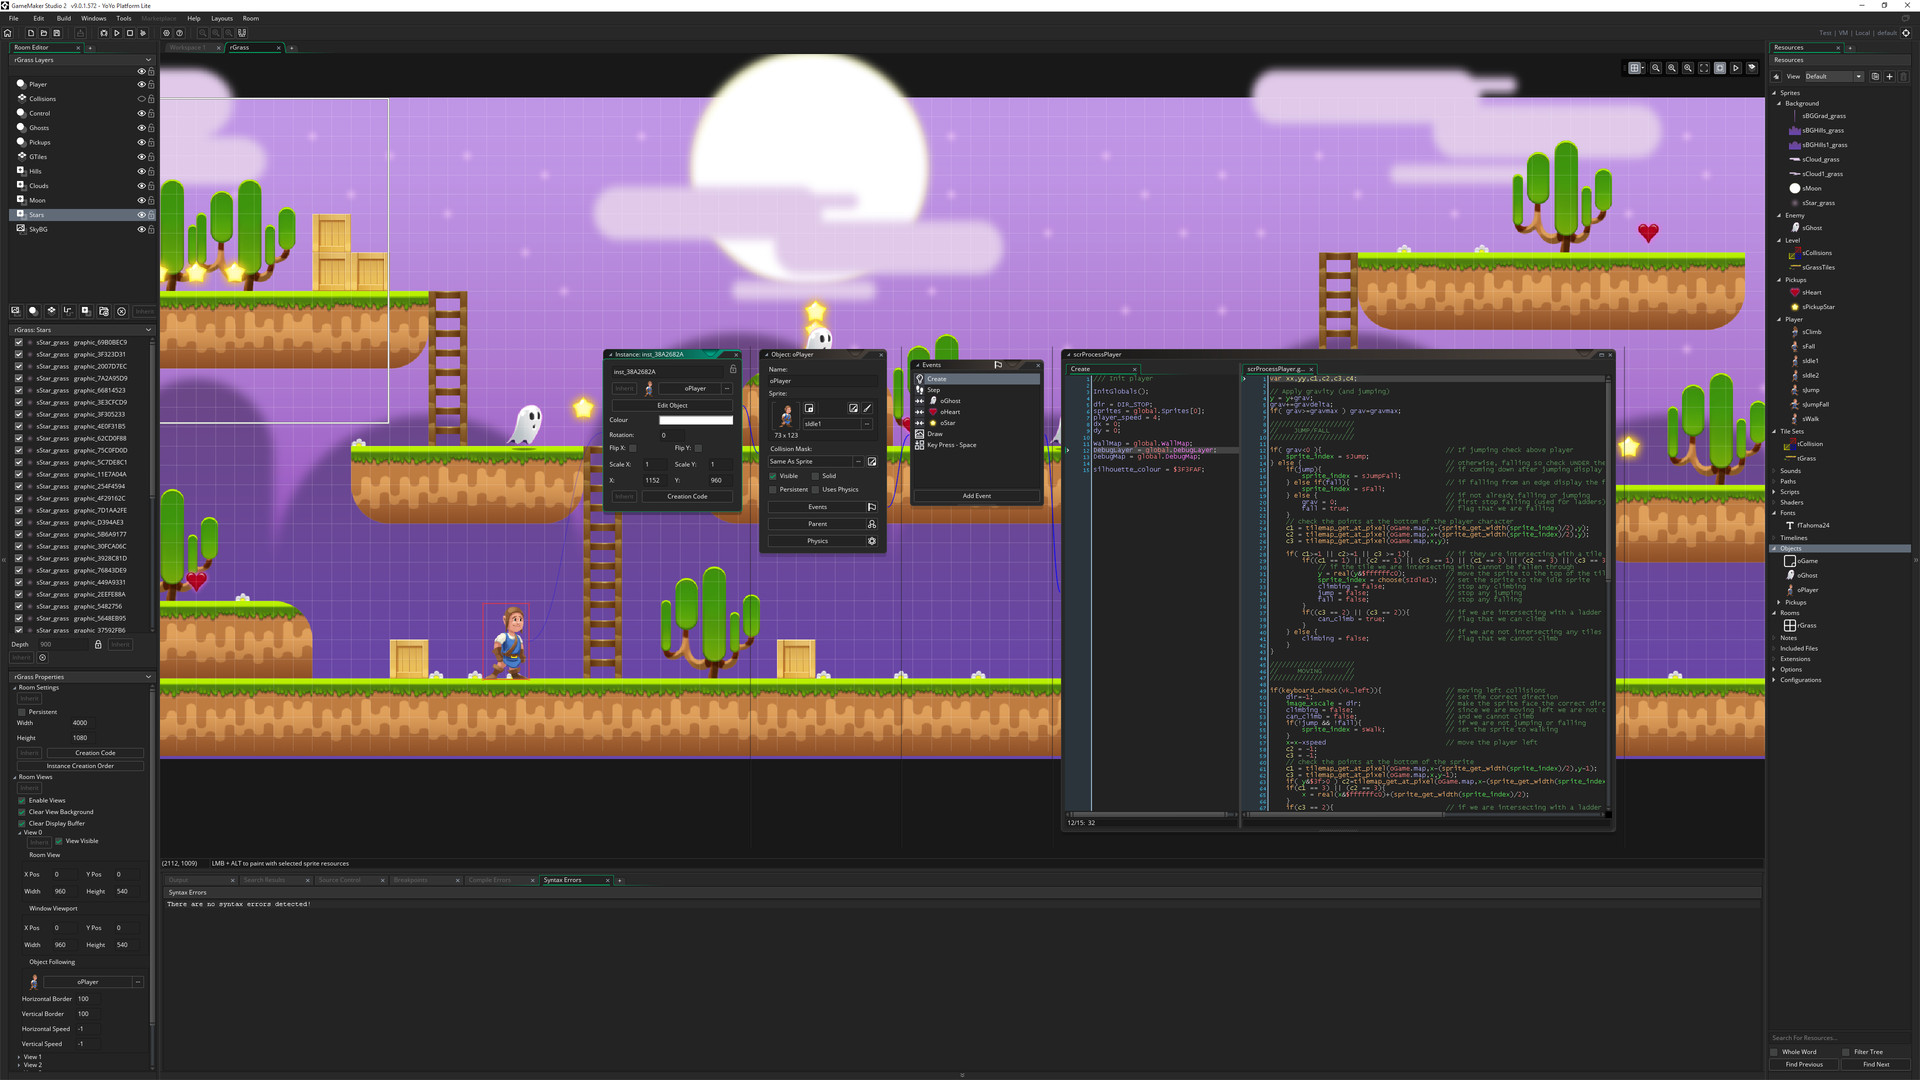 game maker studio 2.0 download